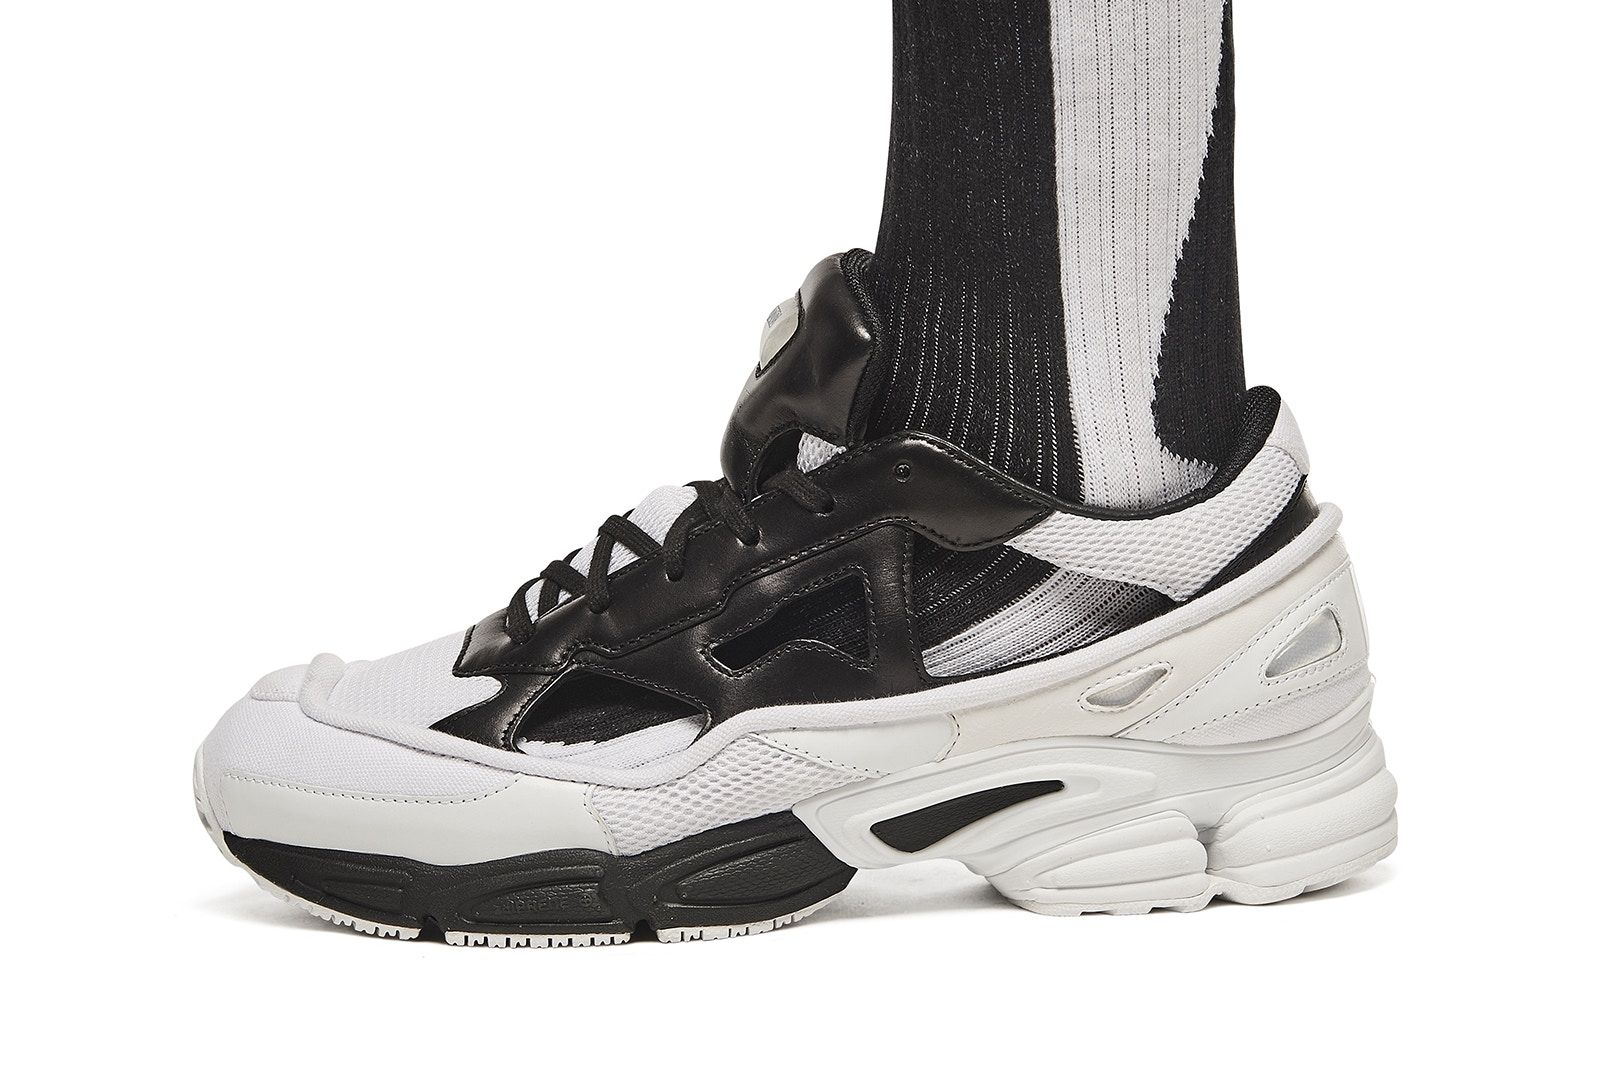 88ac4be68cb Raf Simons Deconstructs the Ozweego for Replicant Capsule | Sneakers ...